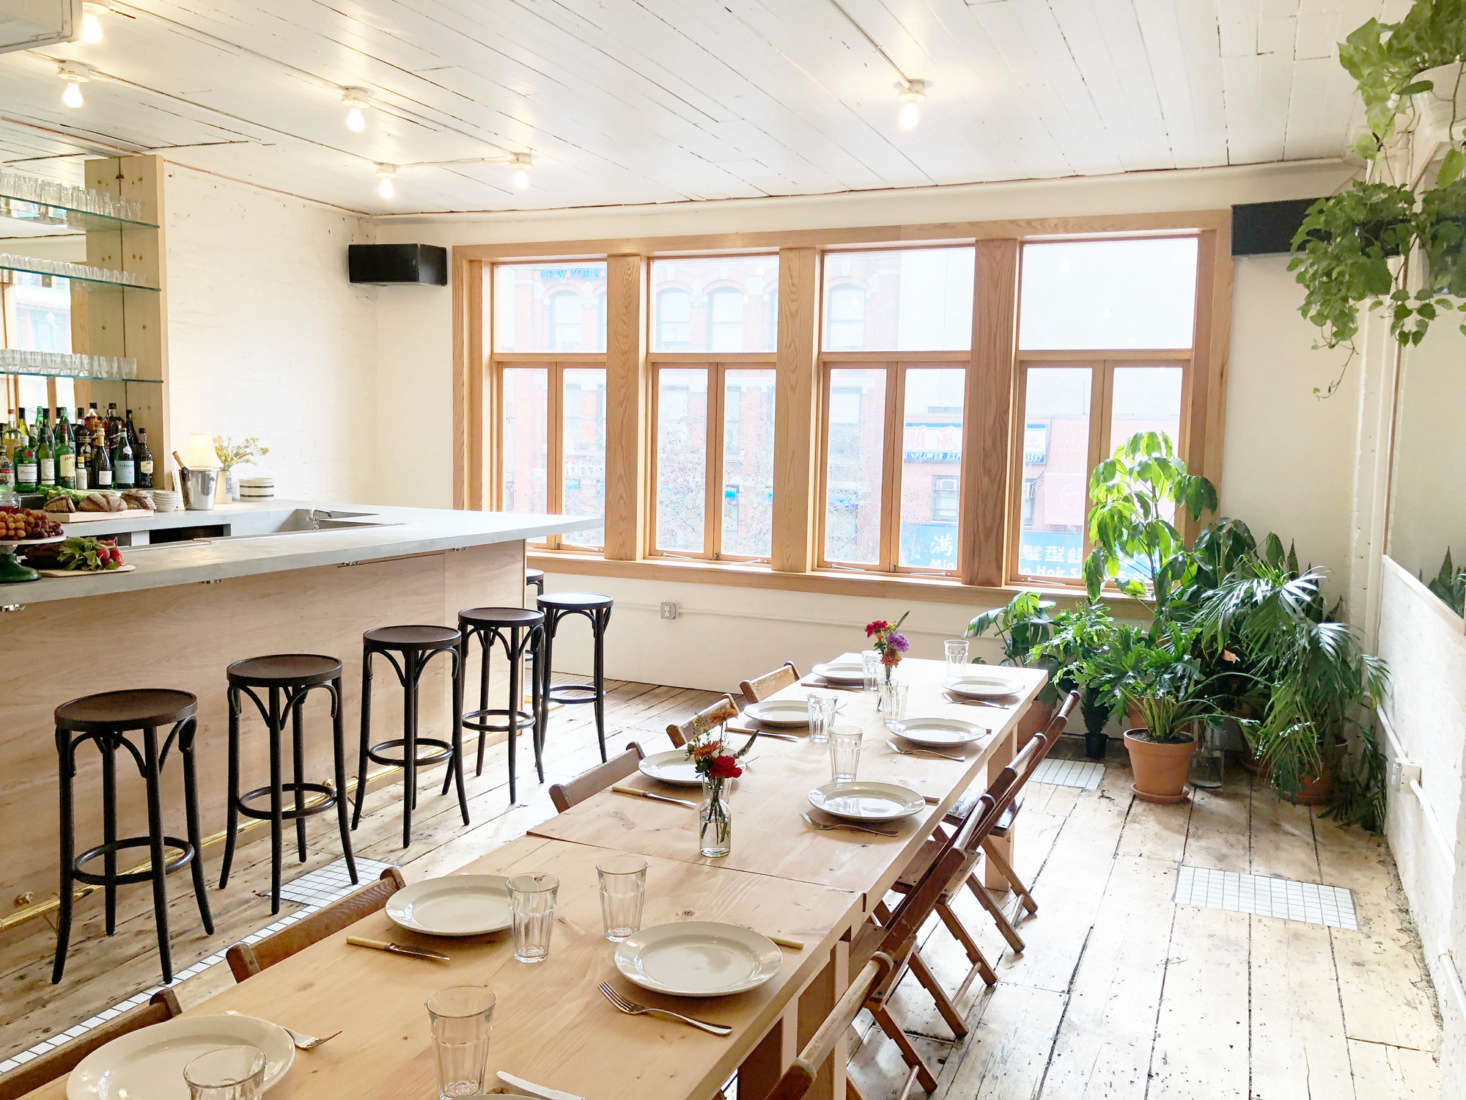 """The third floor has no attached kitchen but does have a bar. """"We connected the spaces with a dumbwaiter so we can send food upstairs from the kitchen,"""" he says."""